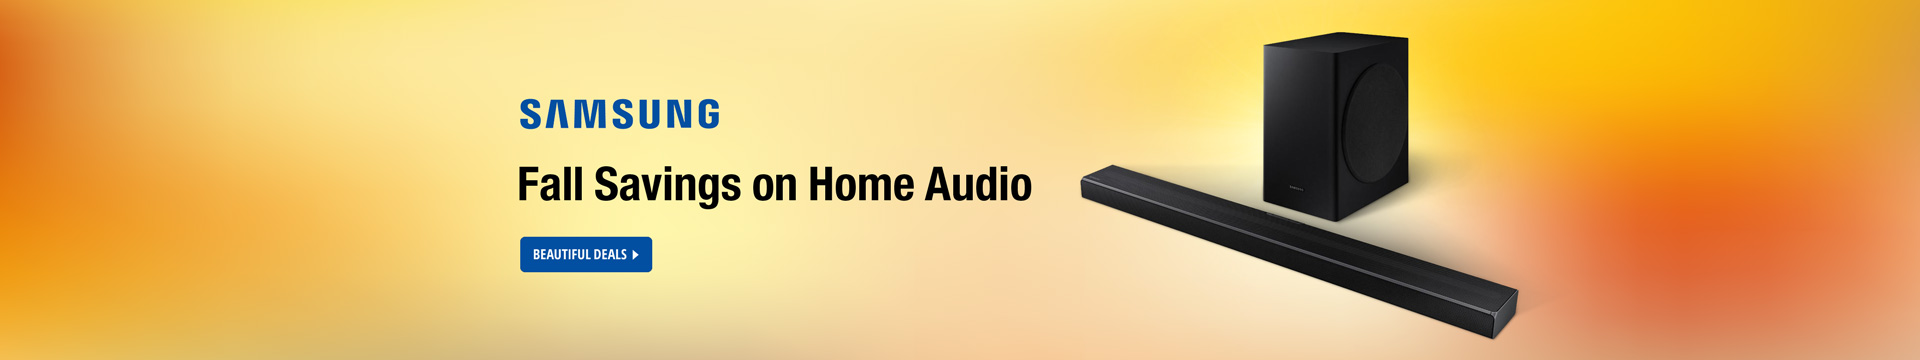 Samsung Fall Savings on Home Audio